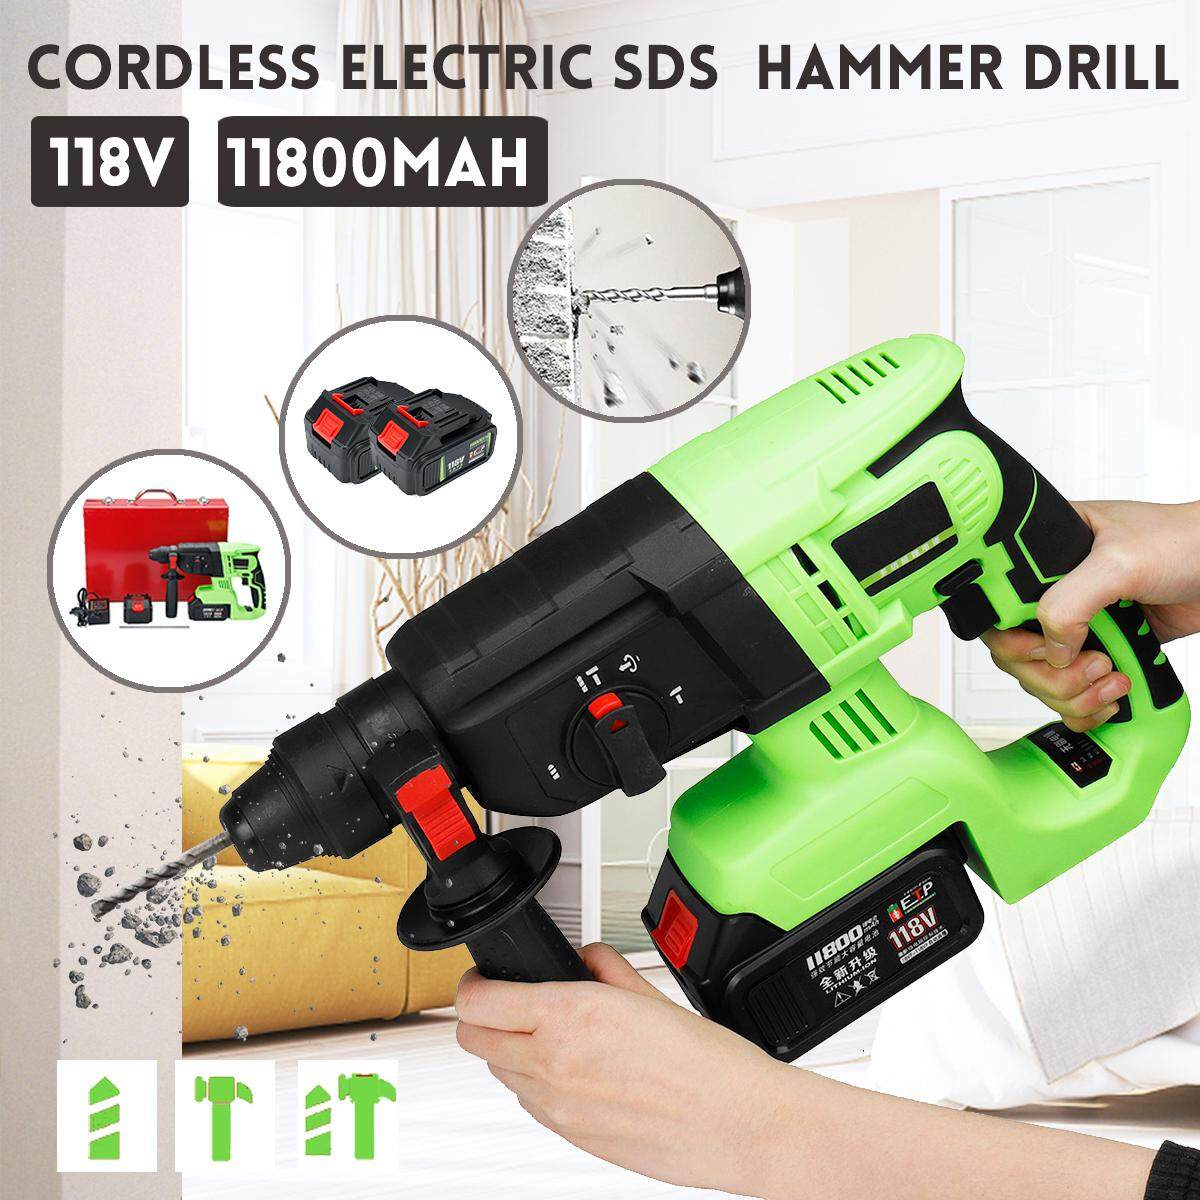 118V Cordless Electric SDS Hammer Drill 11800mAh 4-Groove